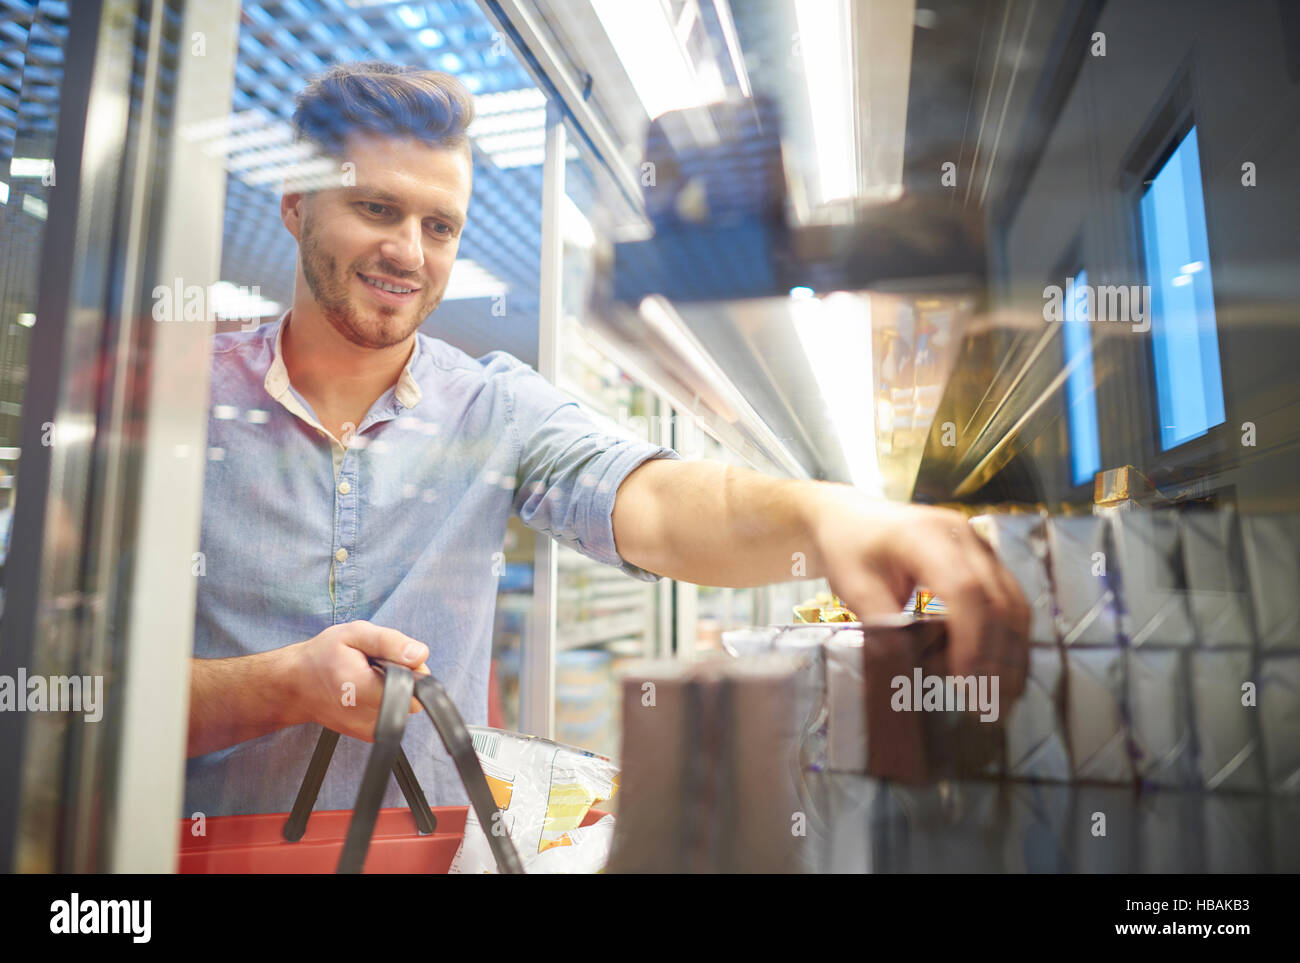 Man shopping for groceries in supermarket freezer - Stock Image